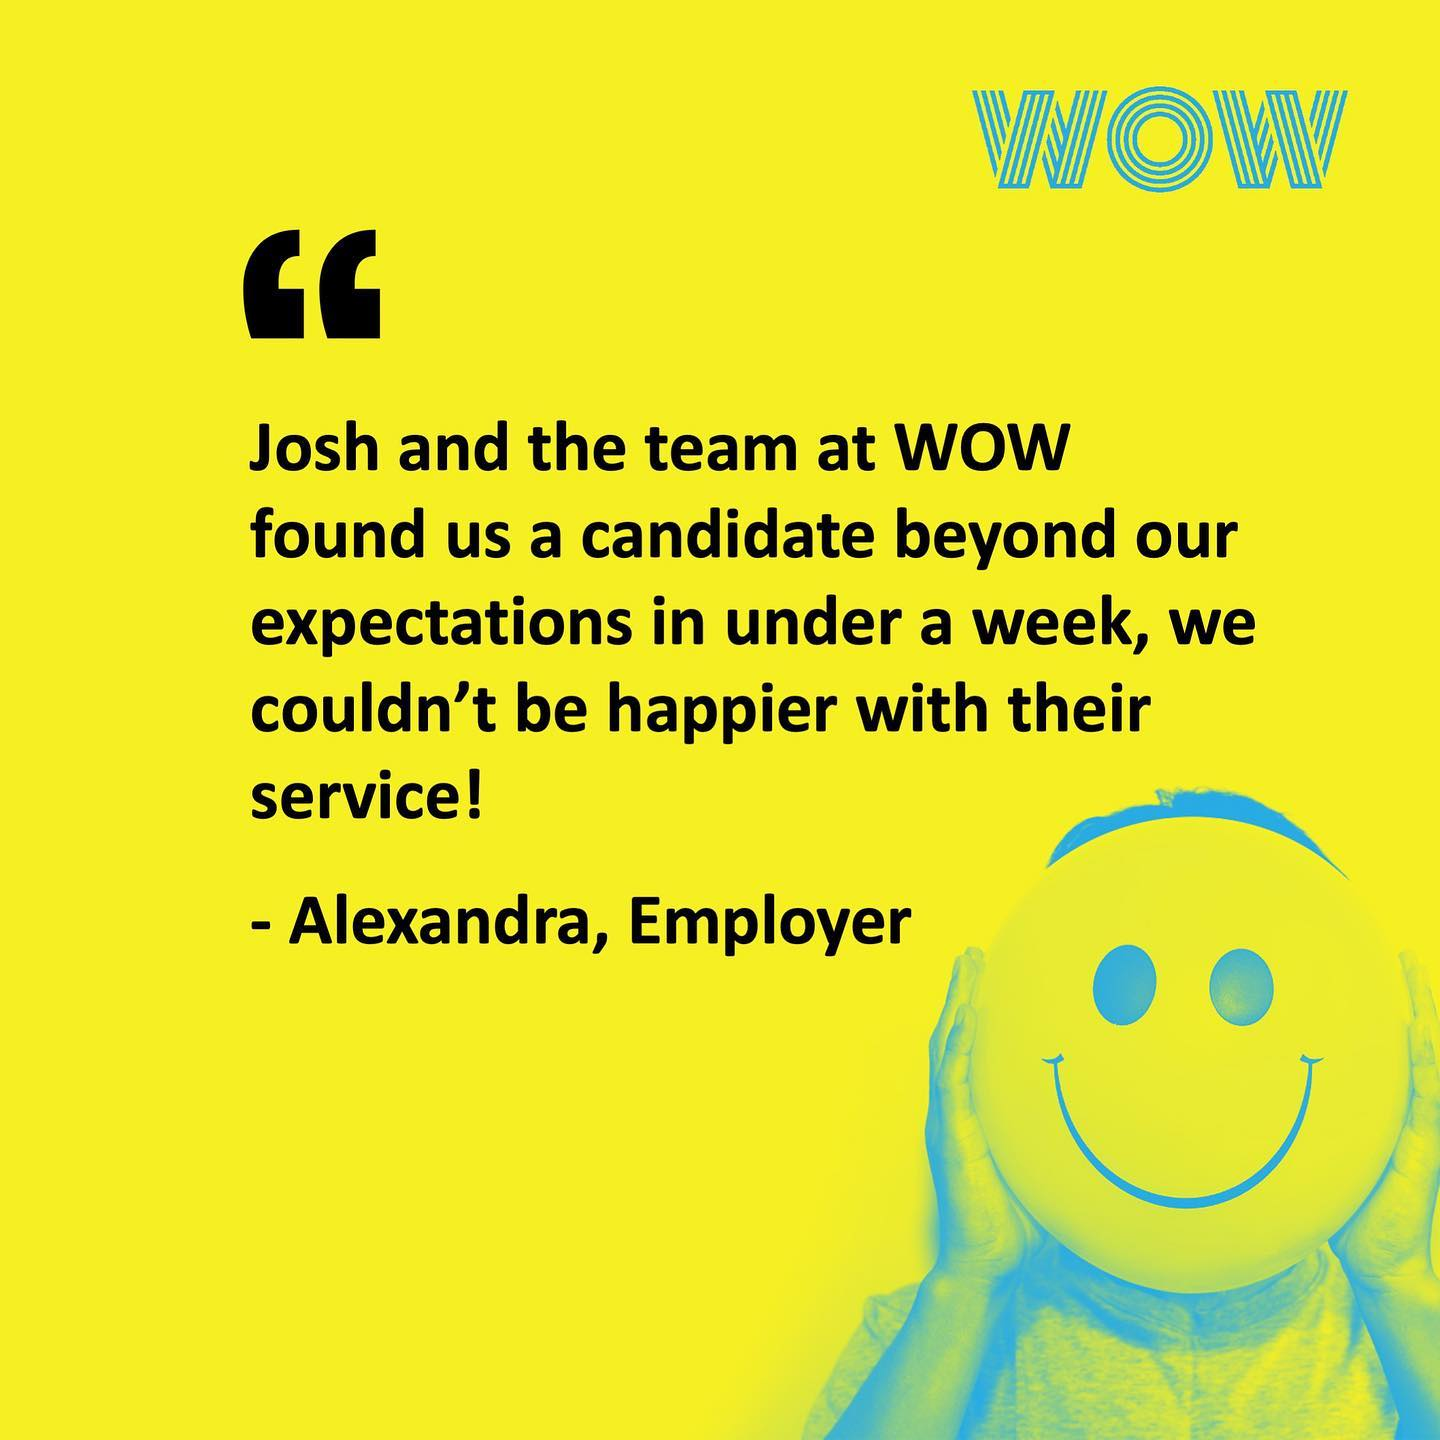 Well done Josh! A very happy client indeed